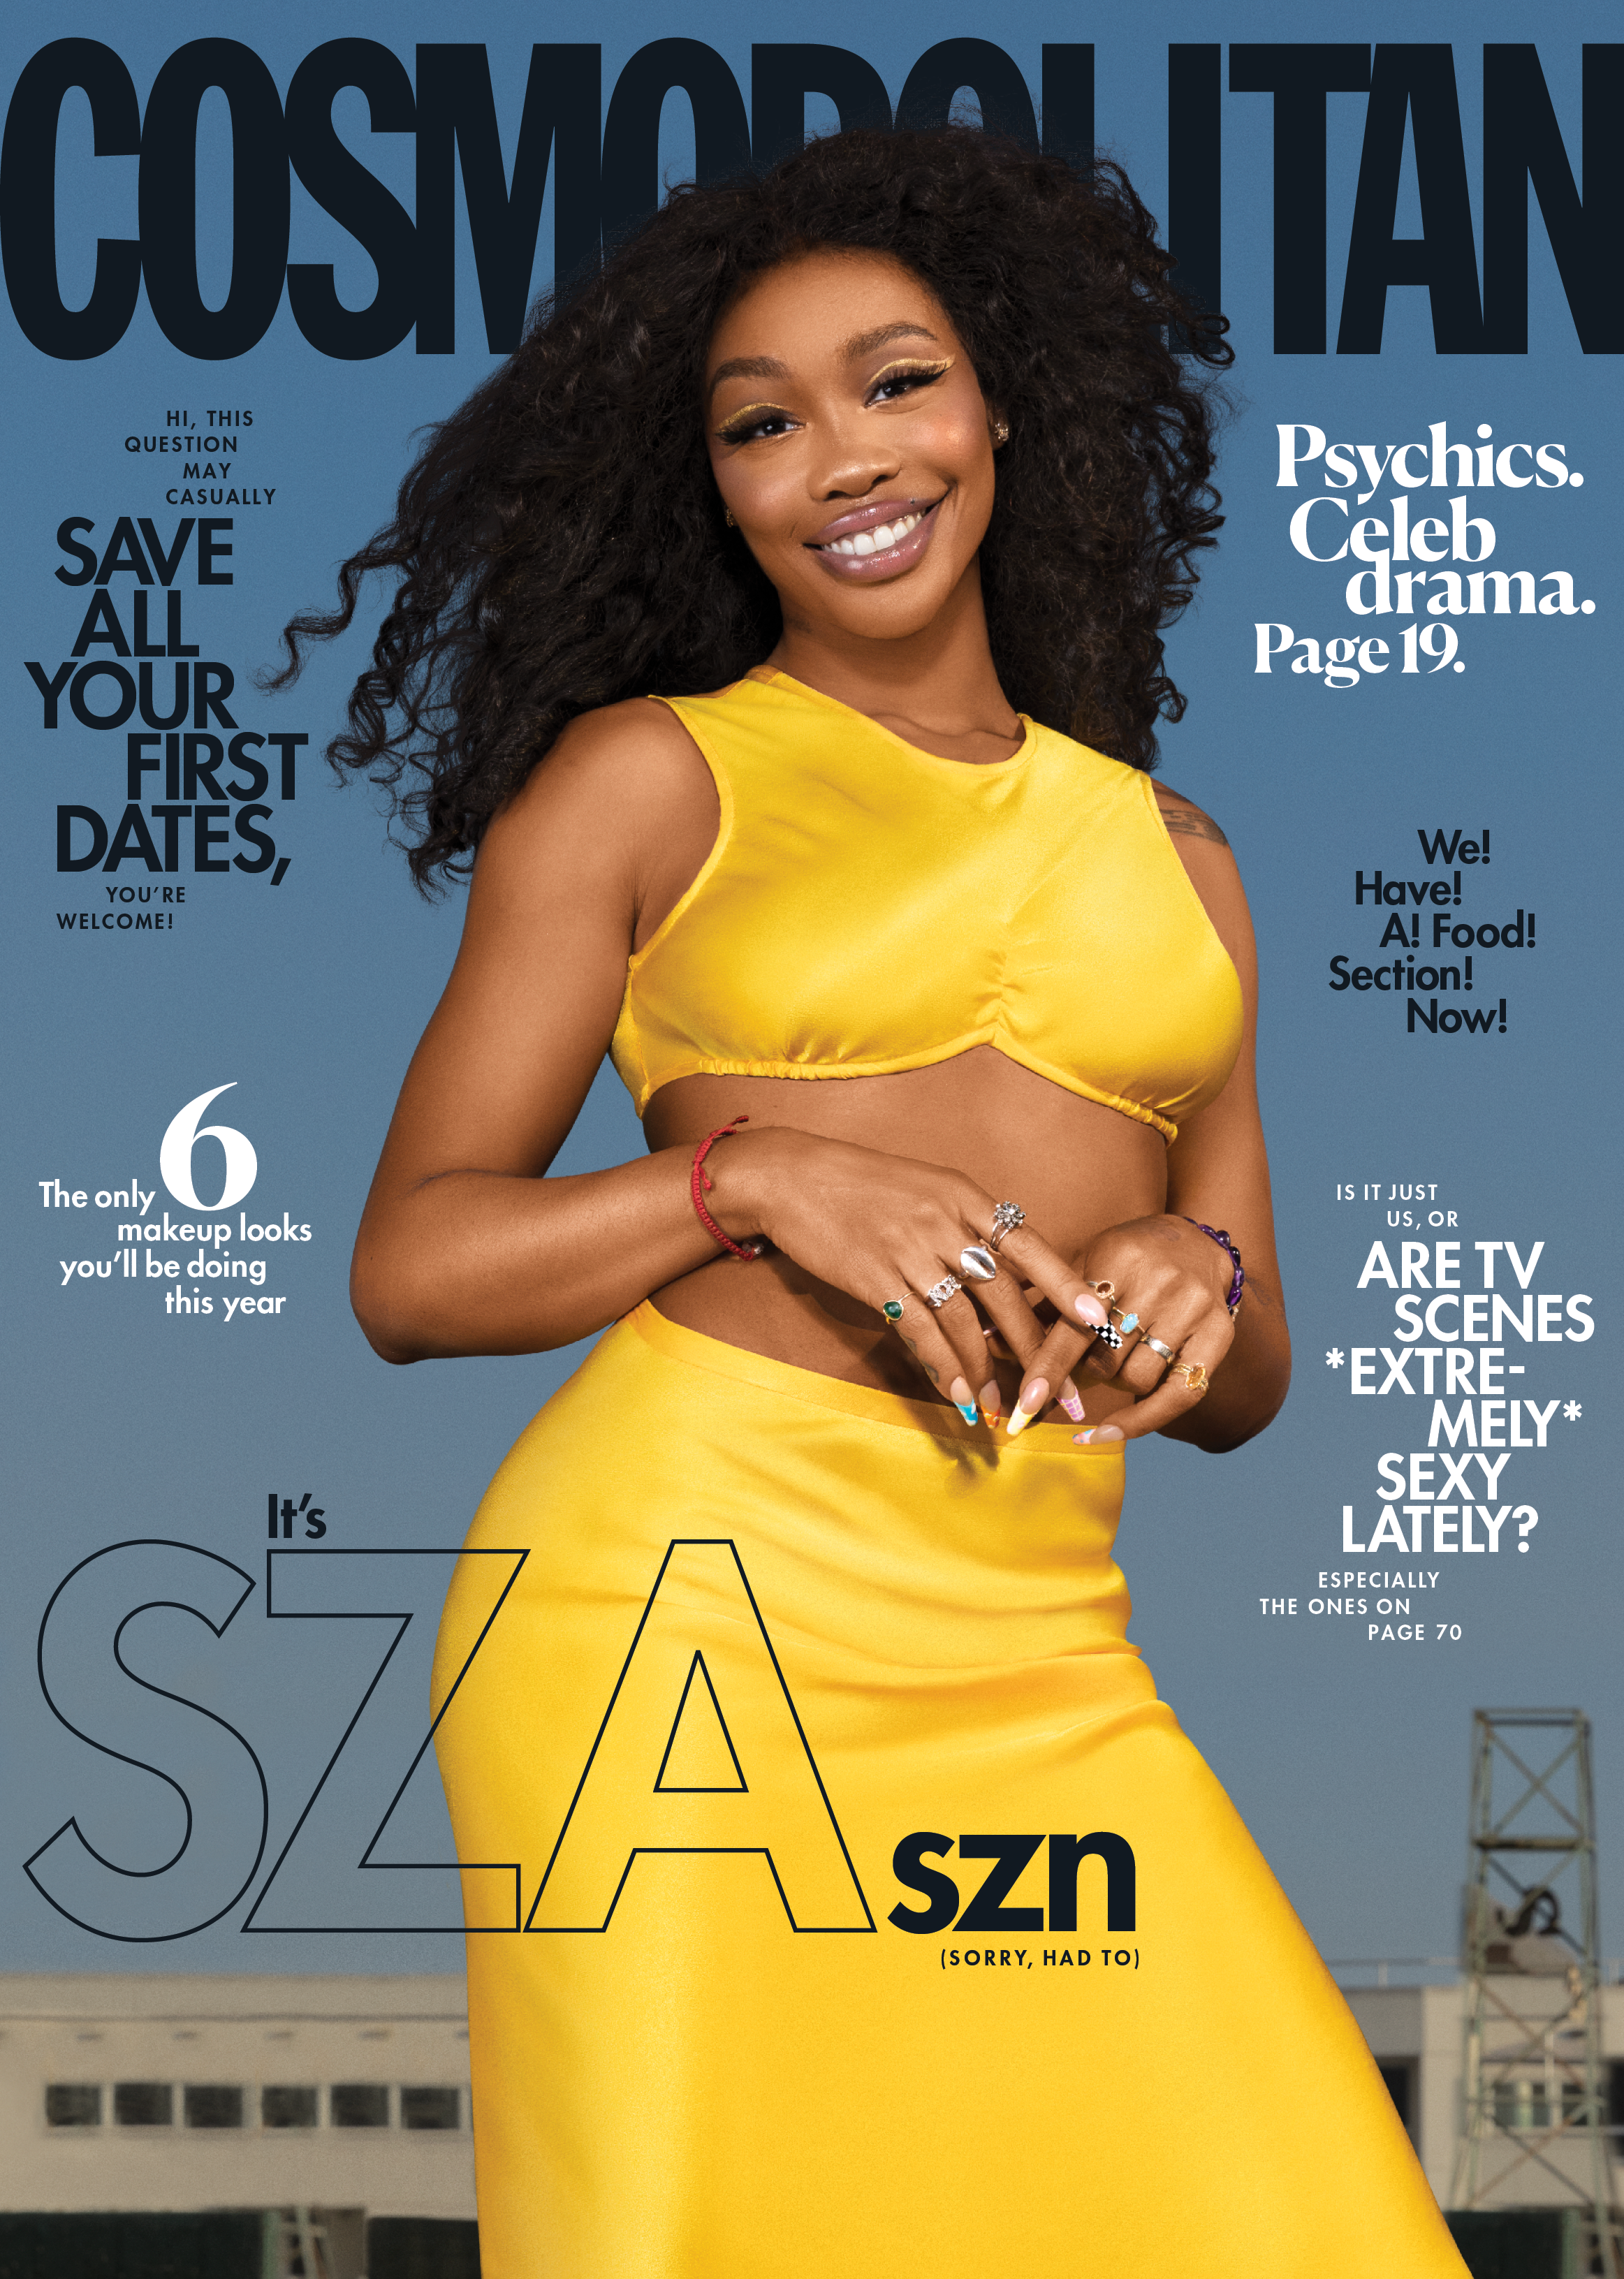 SZA SZN: Solána Covers Cosmopolitan, Says She's Not Mad At Grammy Losses And Offers Hints About Upcoming Album